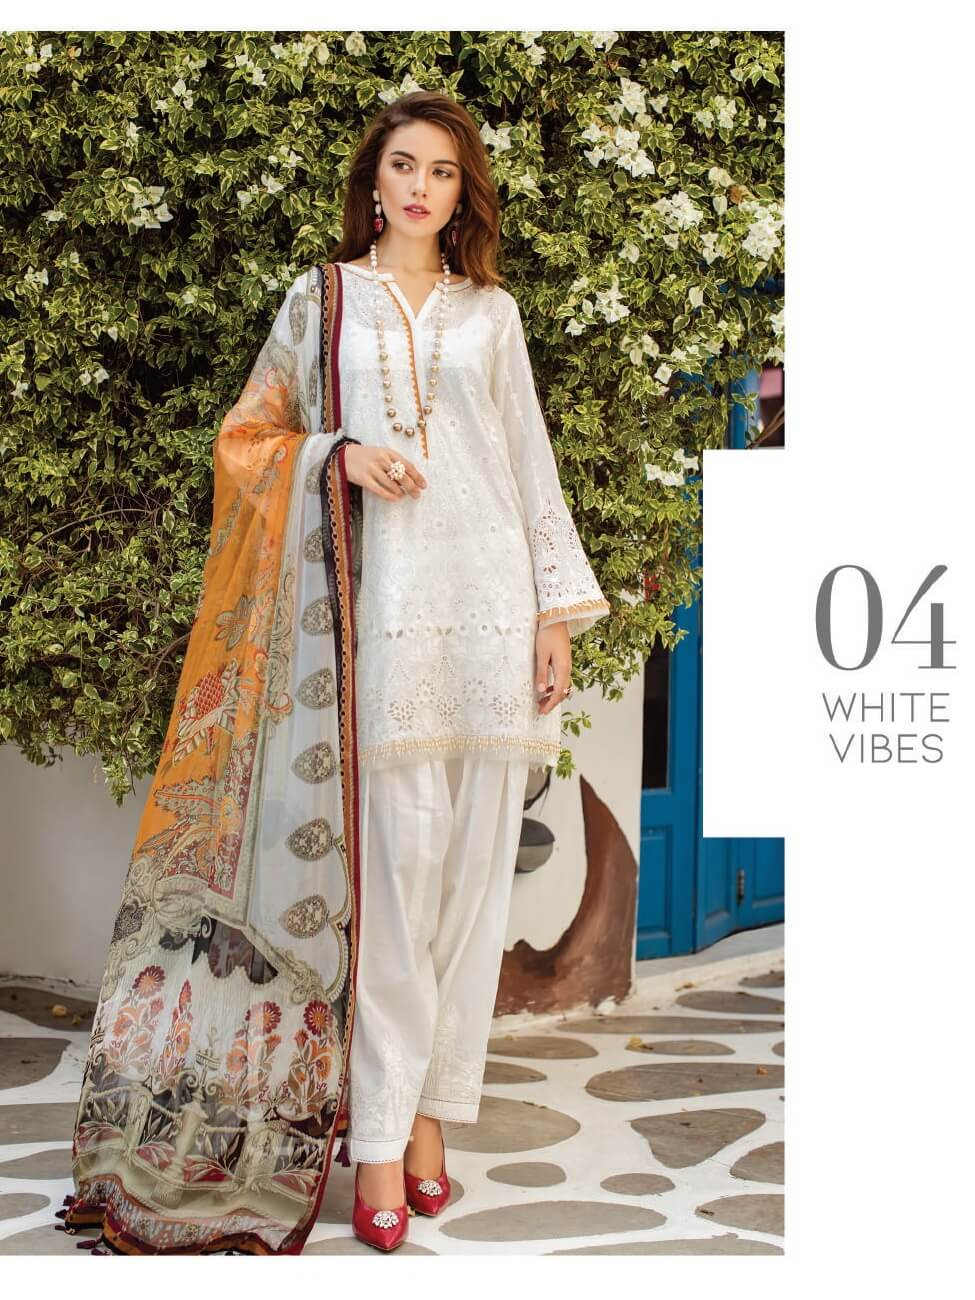 BAROQUE Luxury Swiss Lawn Embroidered 3Pc Suit Summer 2019 D-04 White Vibes - FaisalFabrics.pk